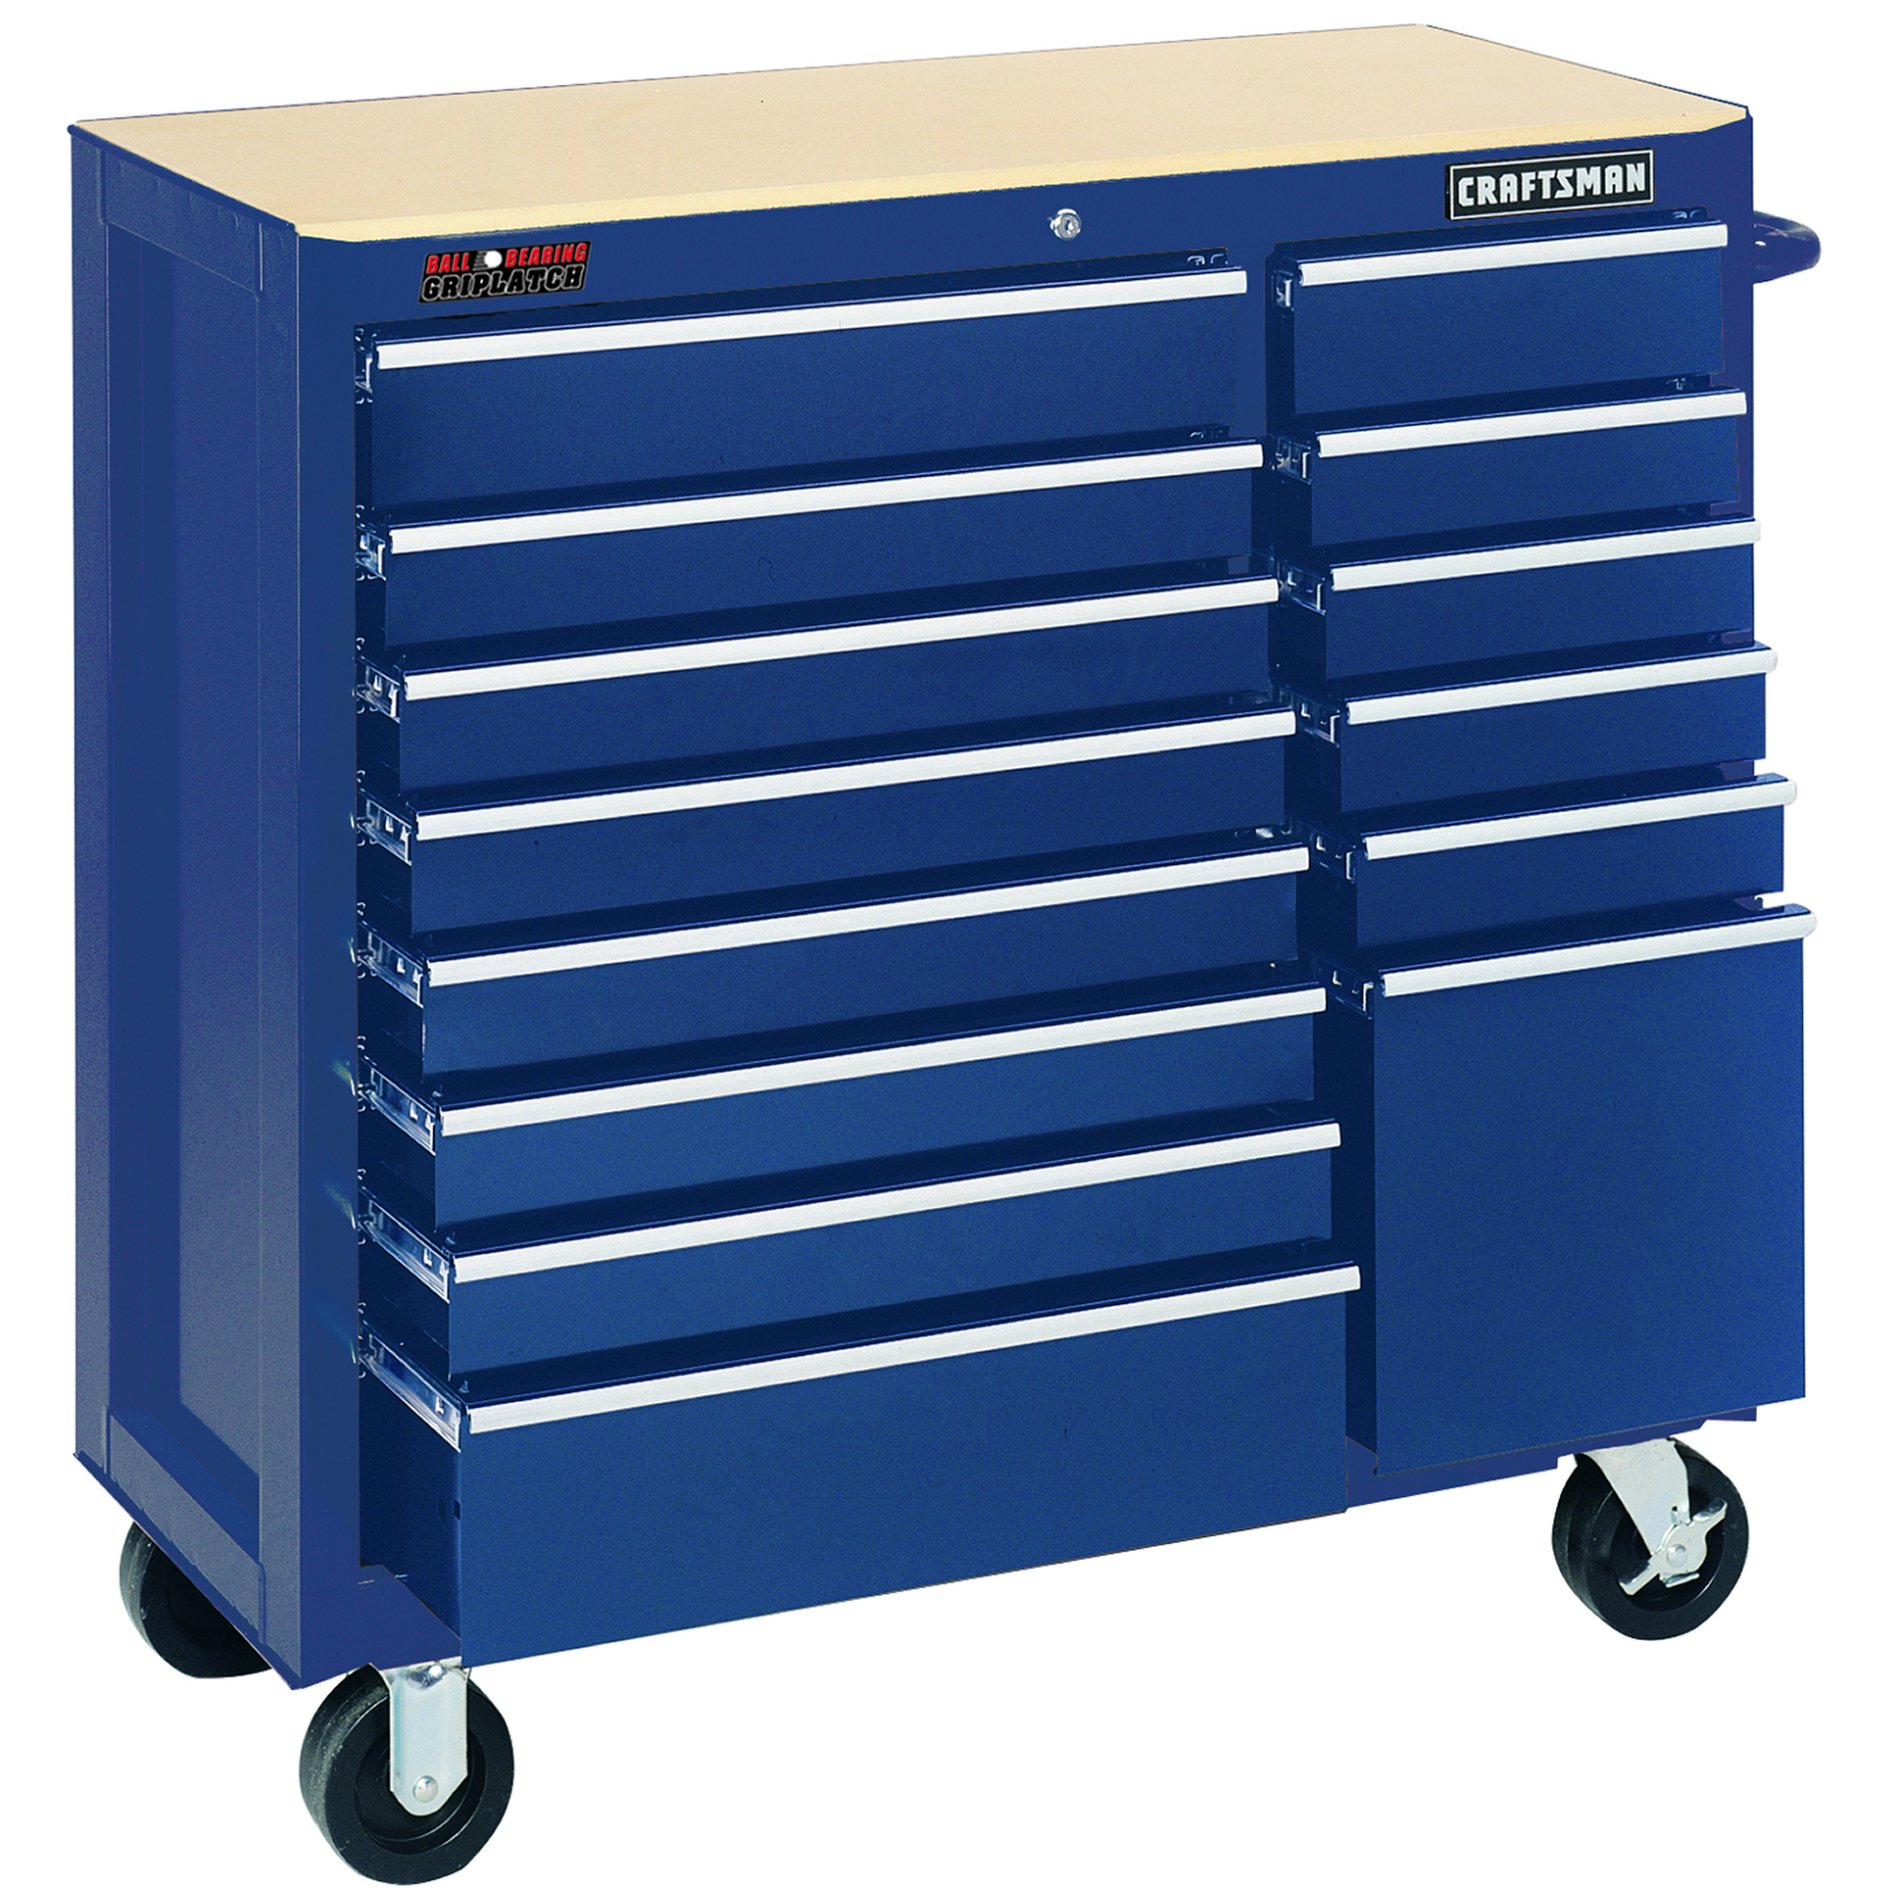 "Craftsman 40"""" Wide 14-Drawer Ball-Bearing GRIPLATCH Rolling Cabinet - Midnight Blue"